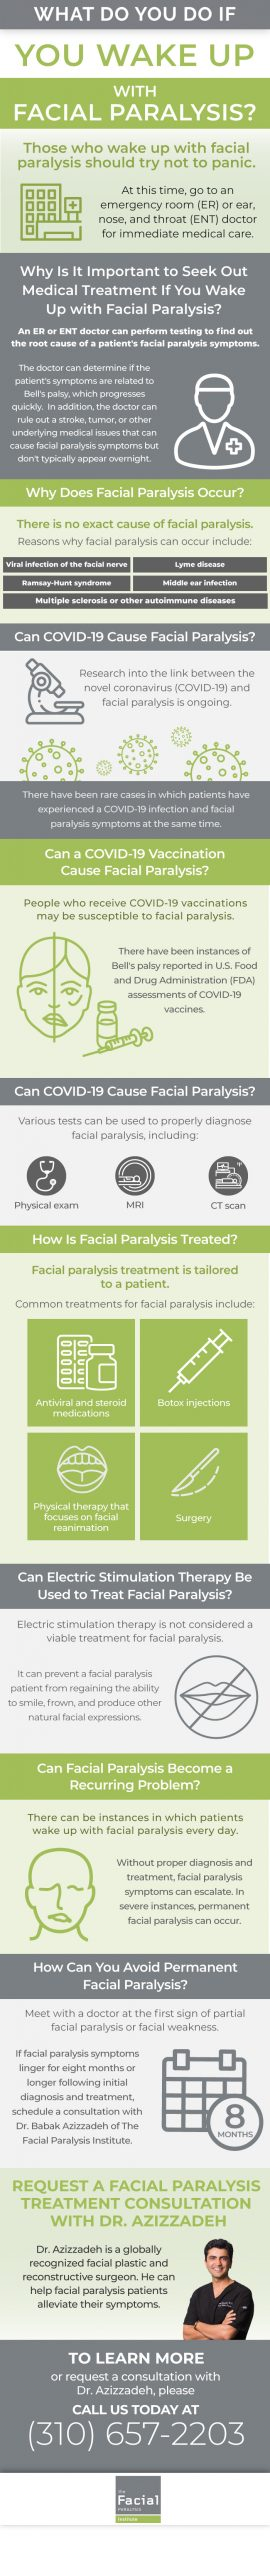 What to Do if You Wake Up with Facial Paralysis Infographic